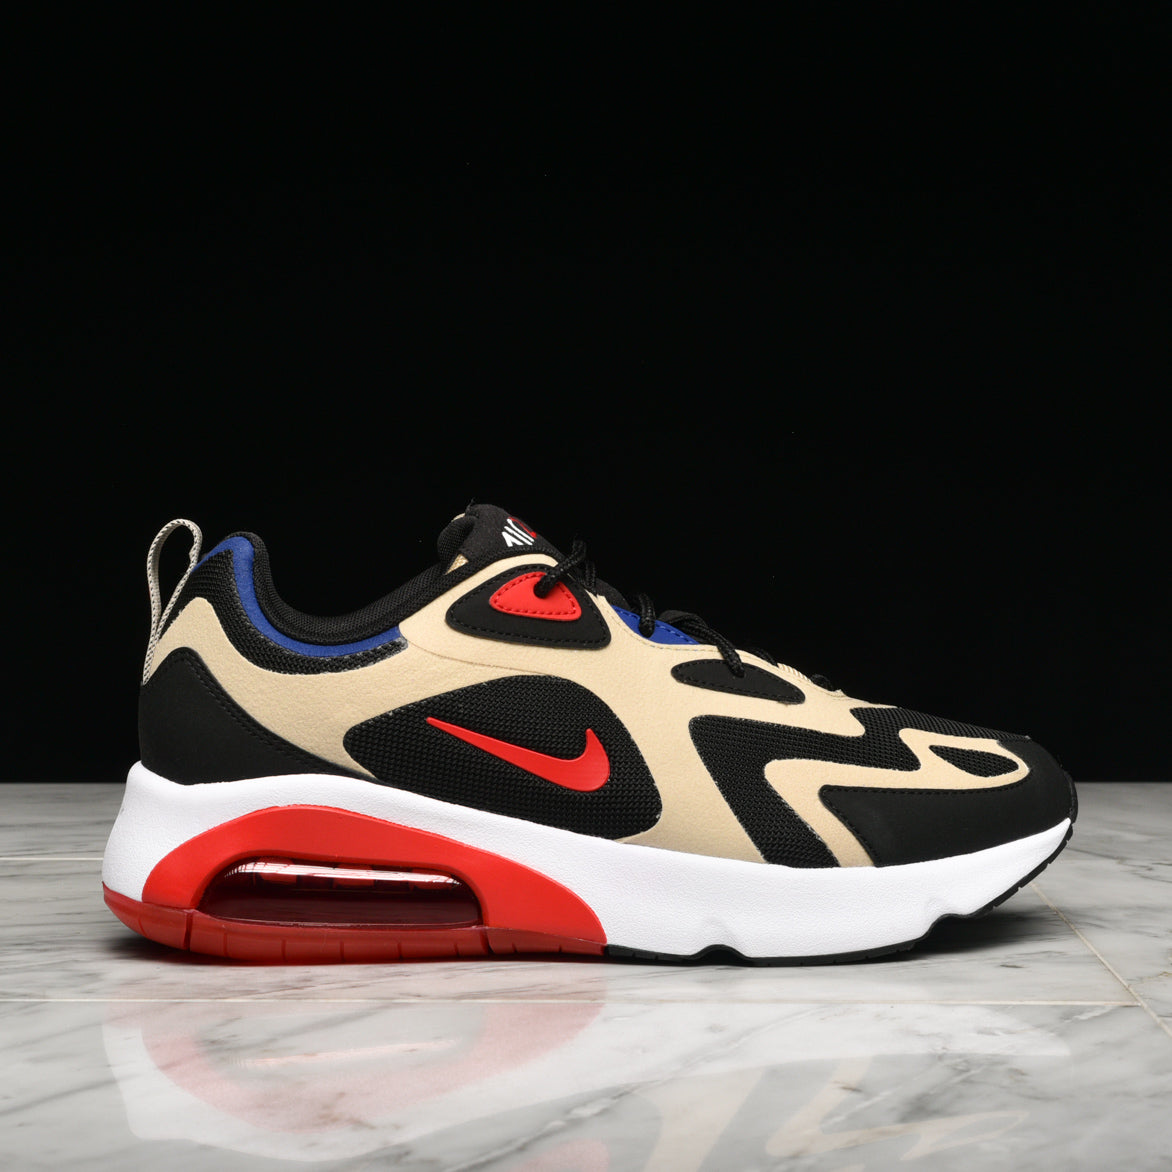 AIR MAX 200 - TEAM GOLD / UNIVERSITY RED